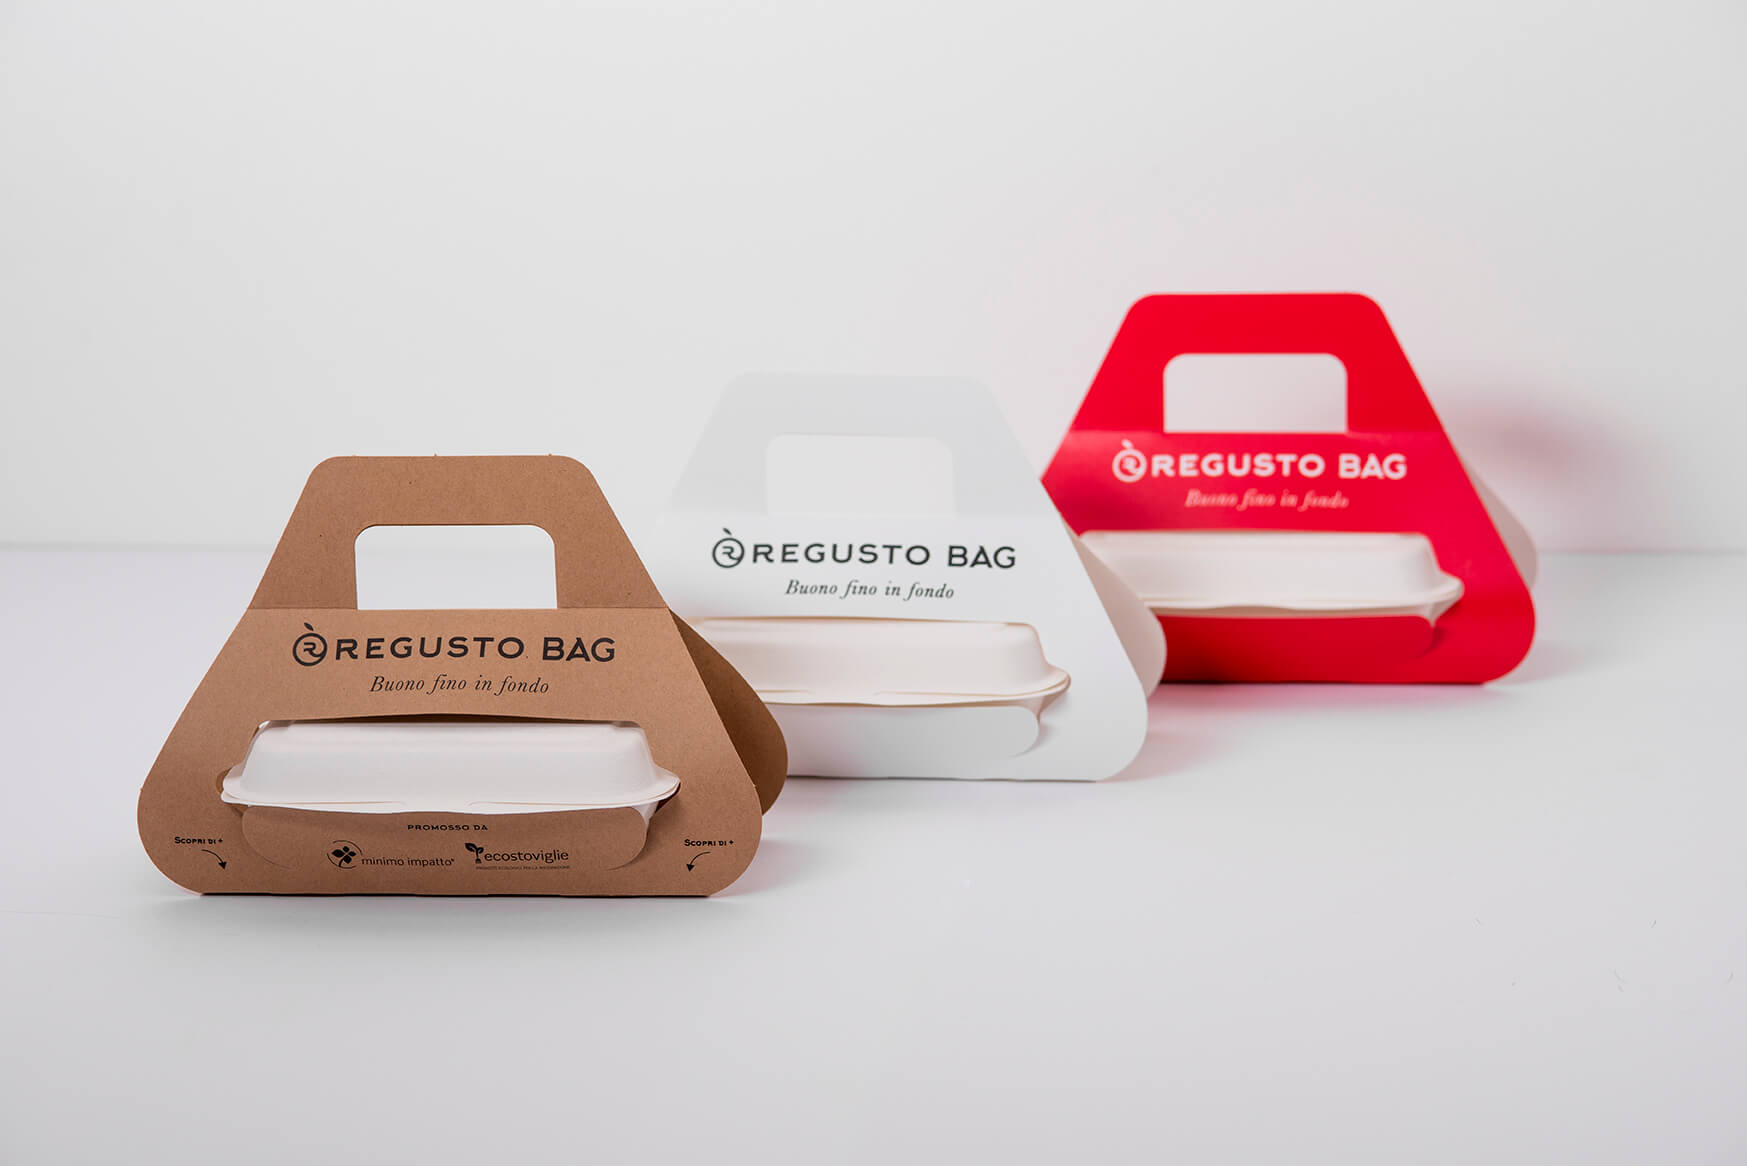 Regusto and NearIT unite against food waste